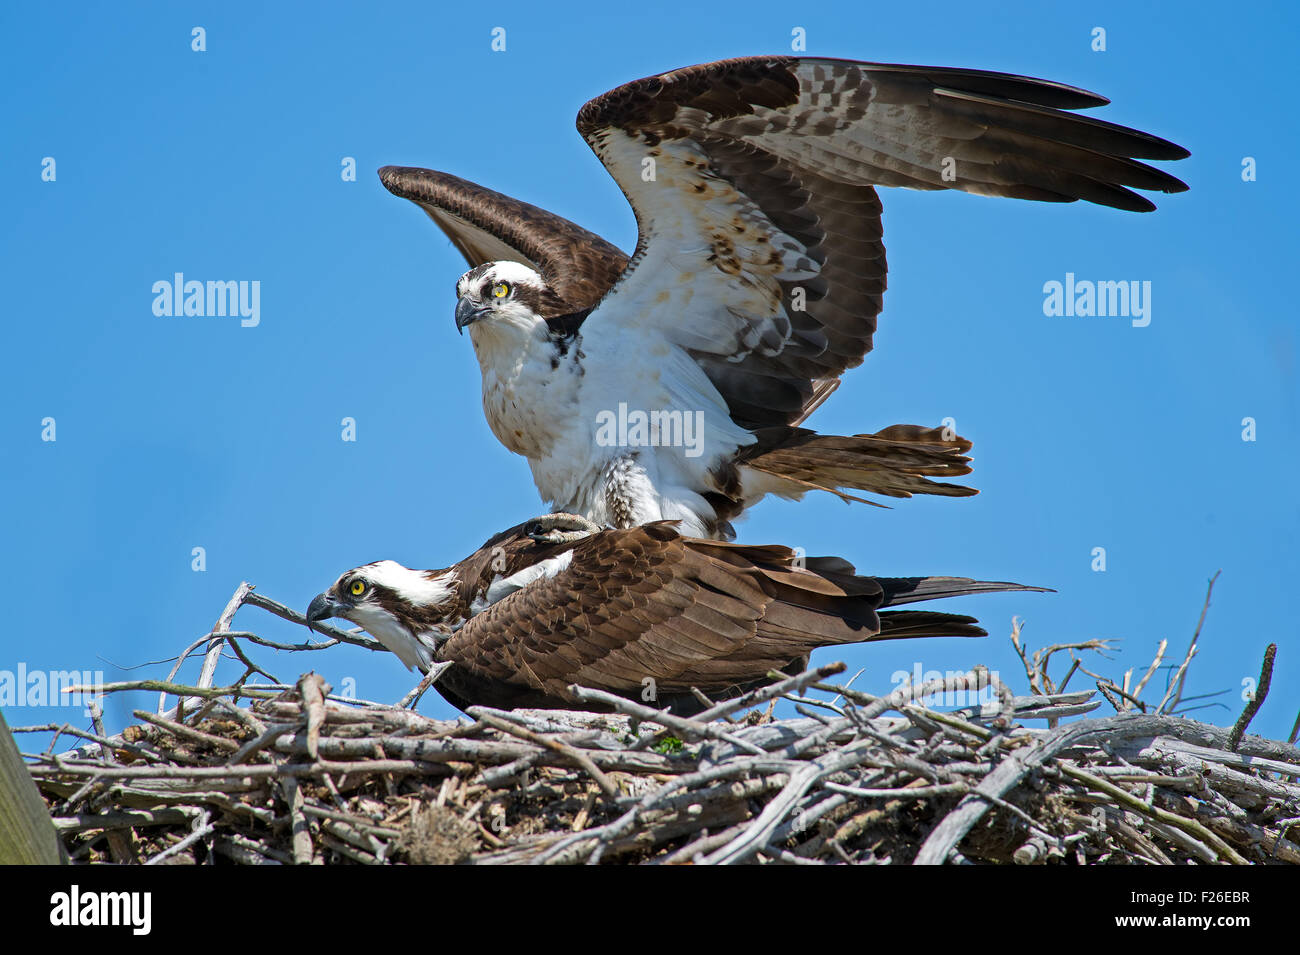 Osprey Mating in nest - Stock Image